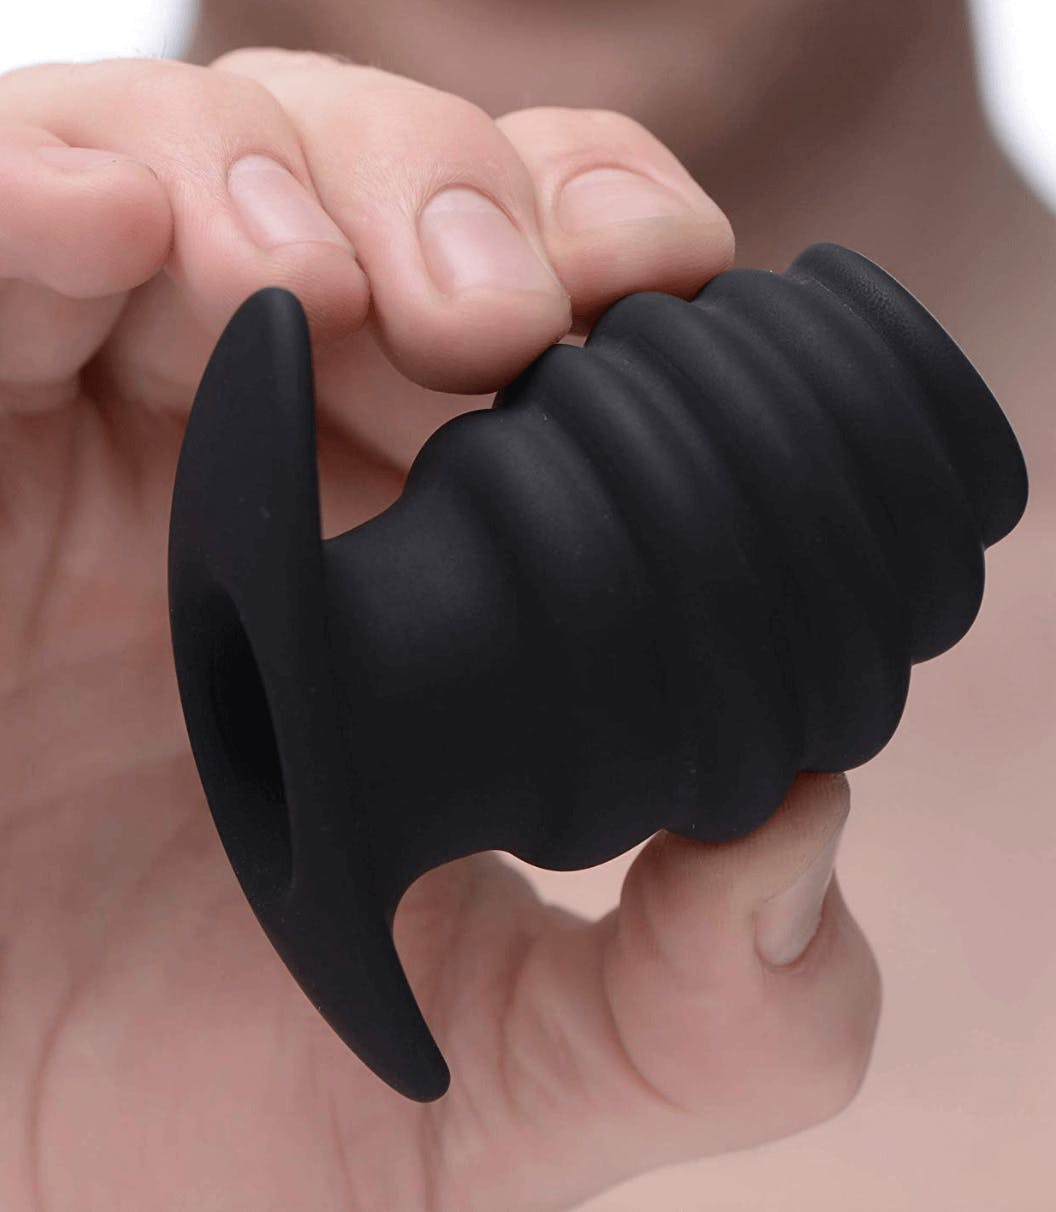 butt plugs for beginners